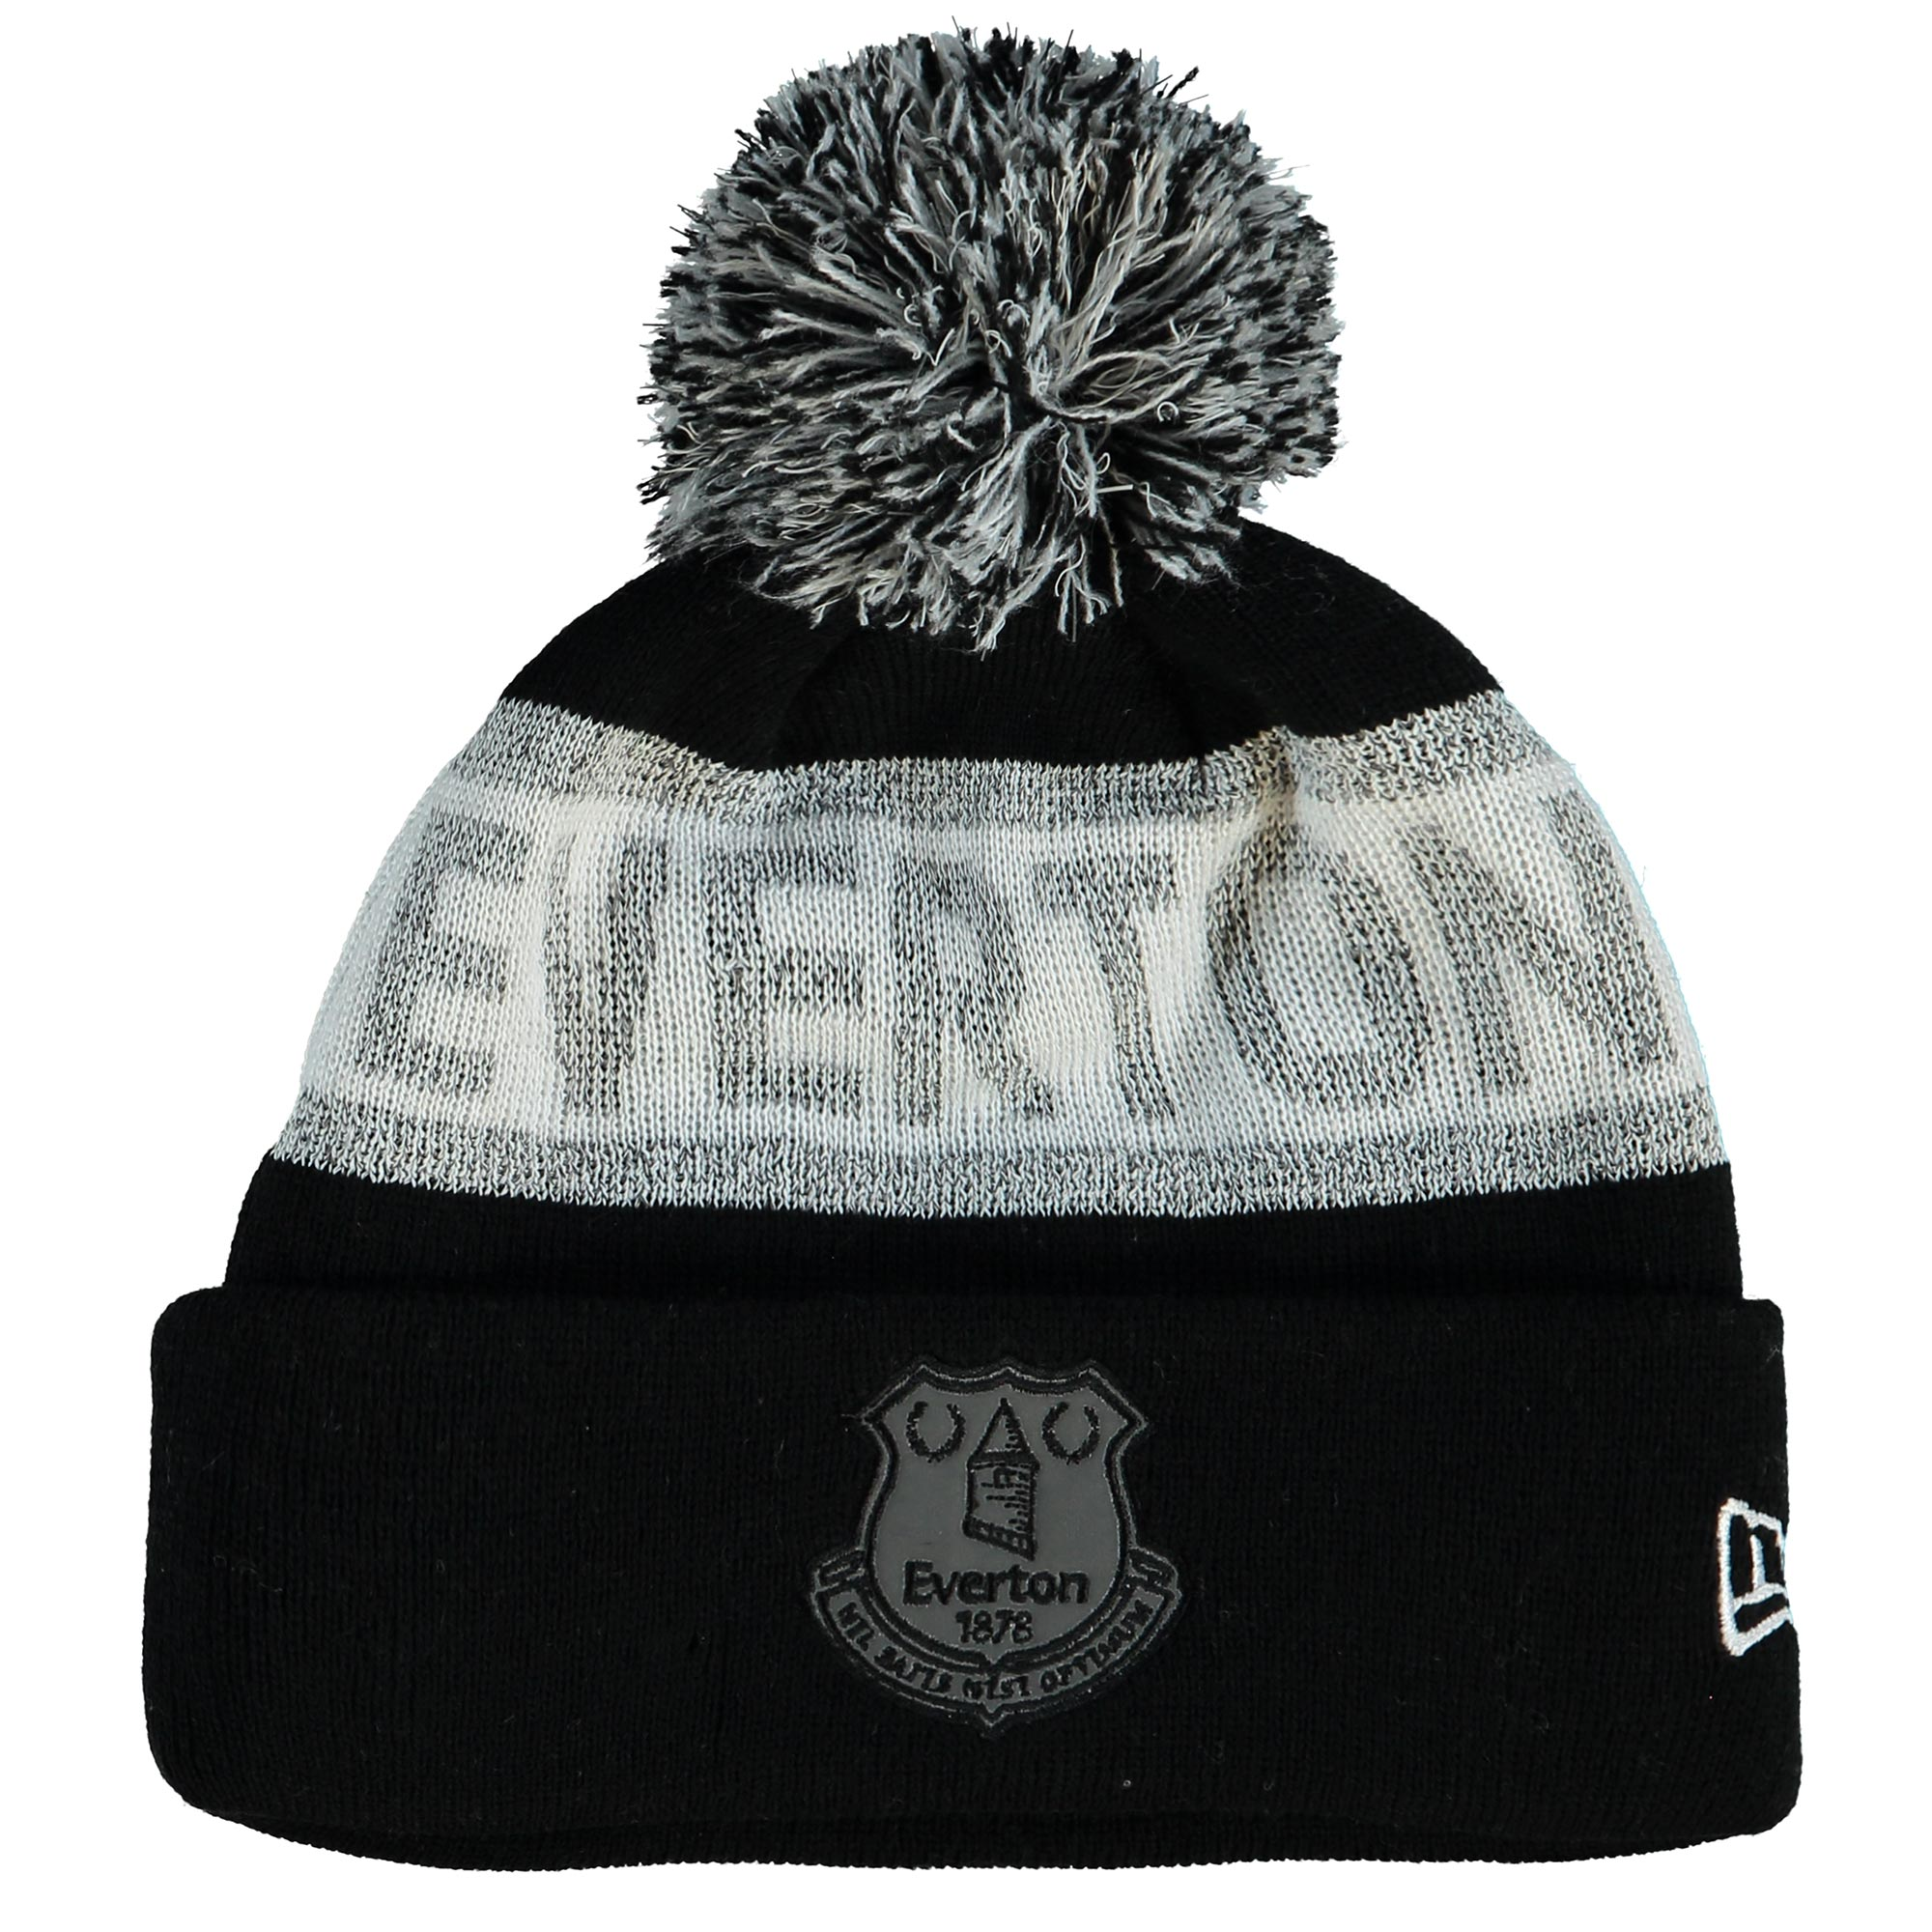 Everton New Era Reflective Cuff Bobble Beanie - Black - Junior